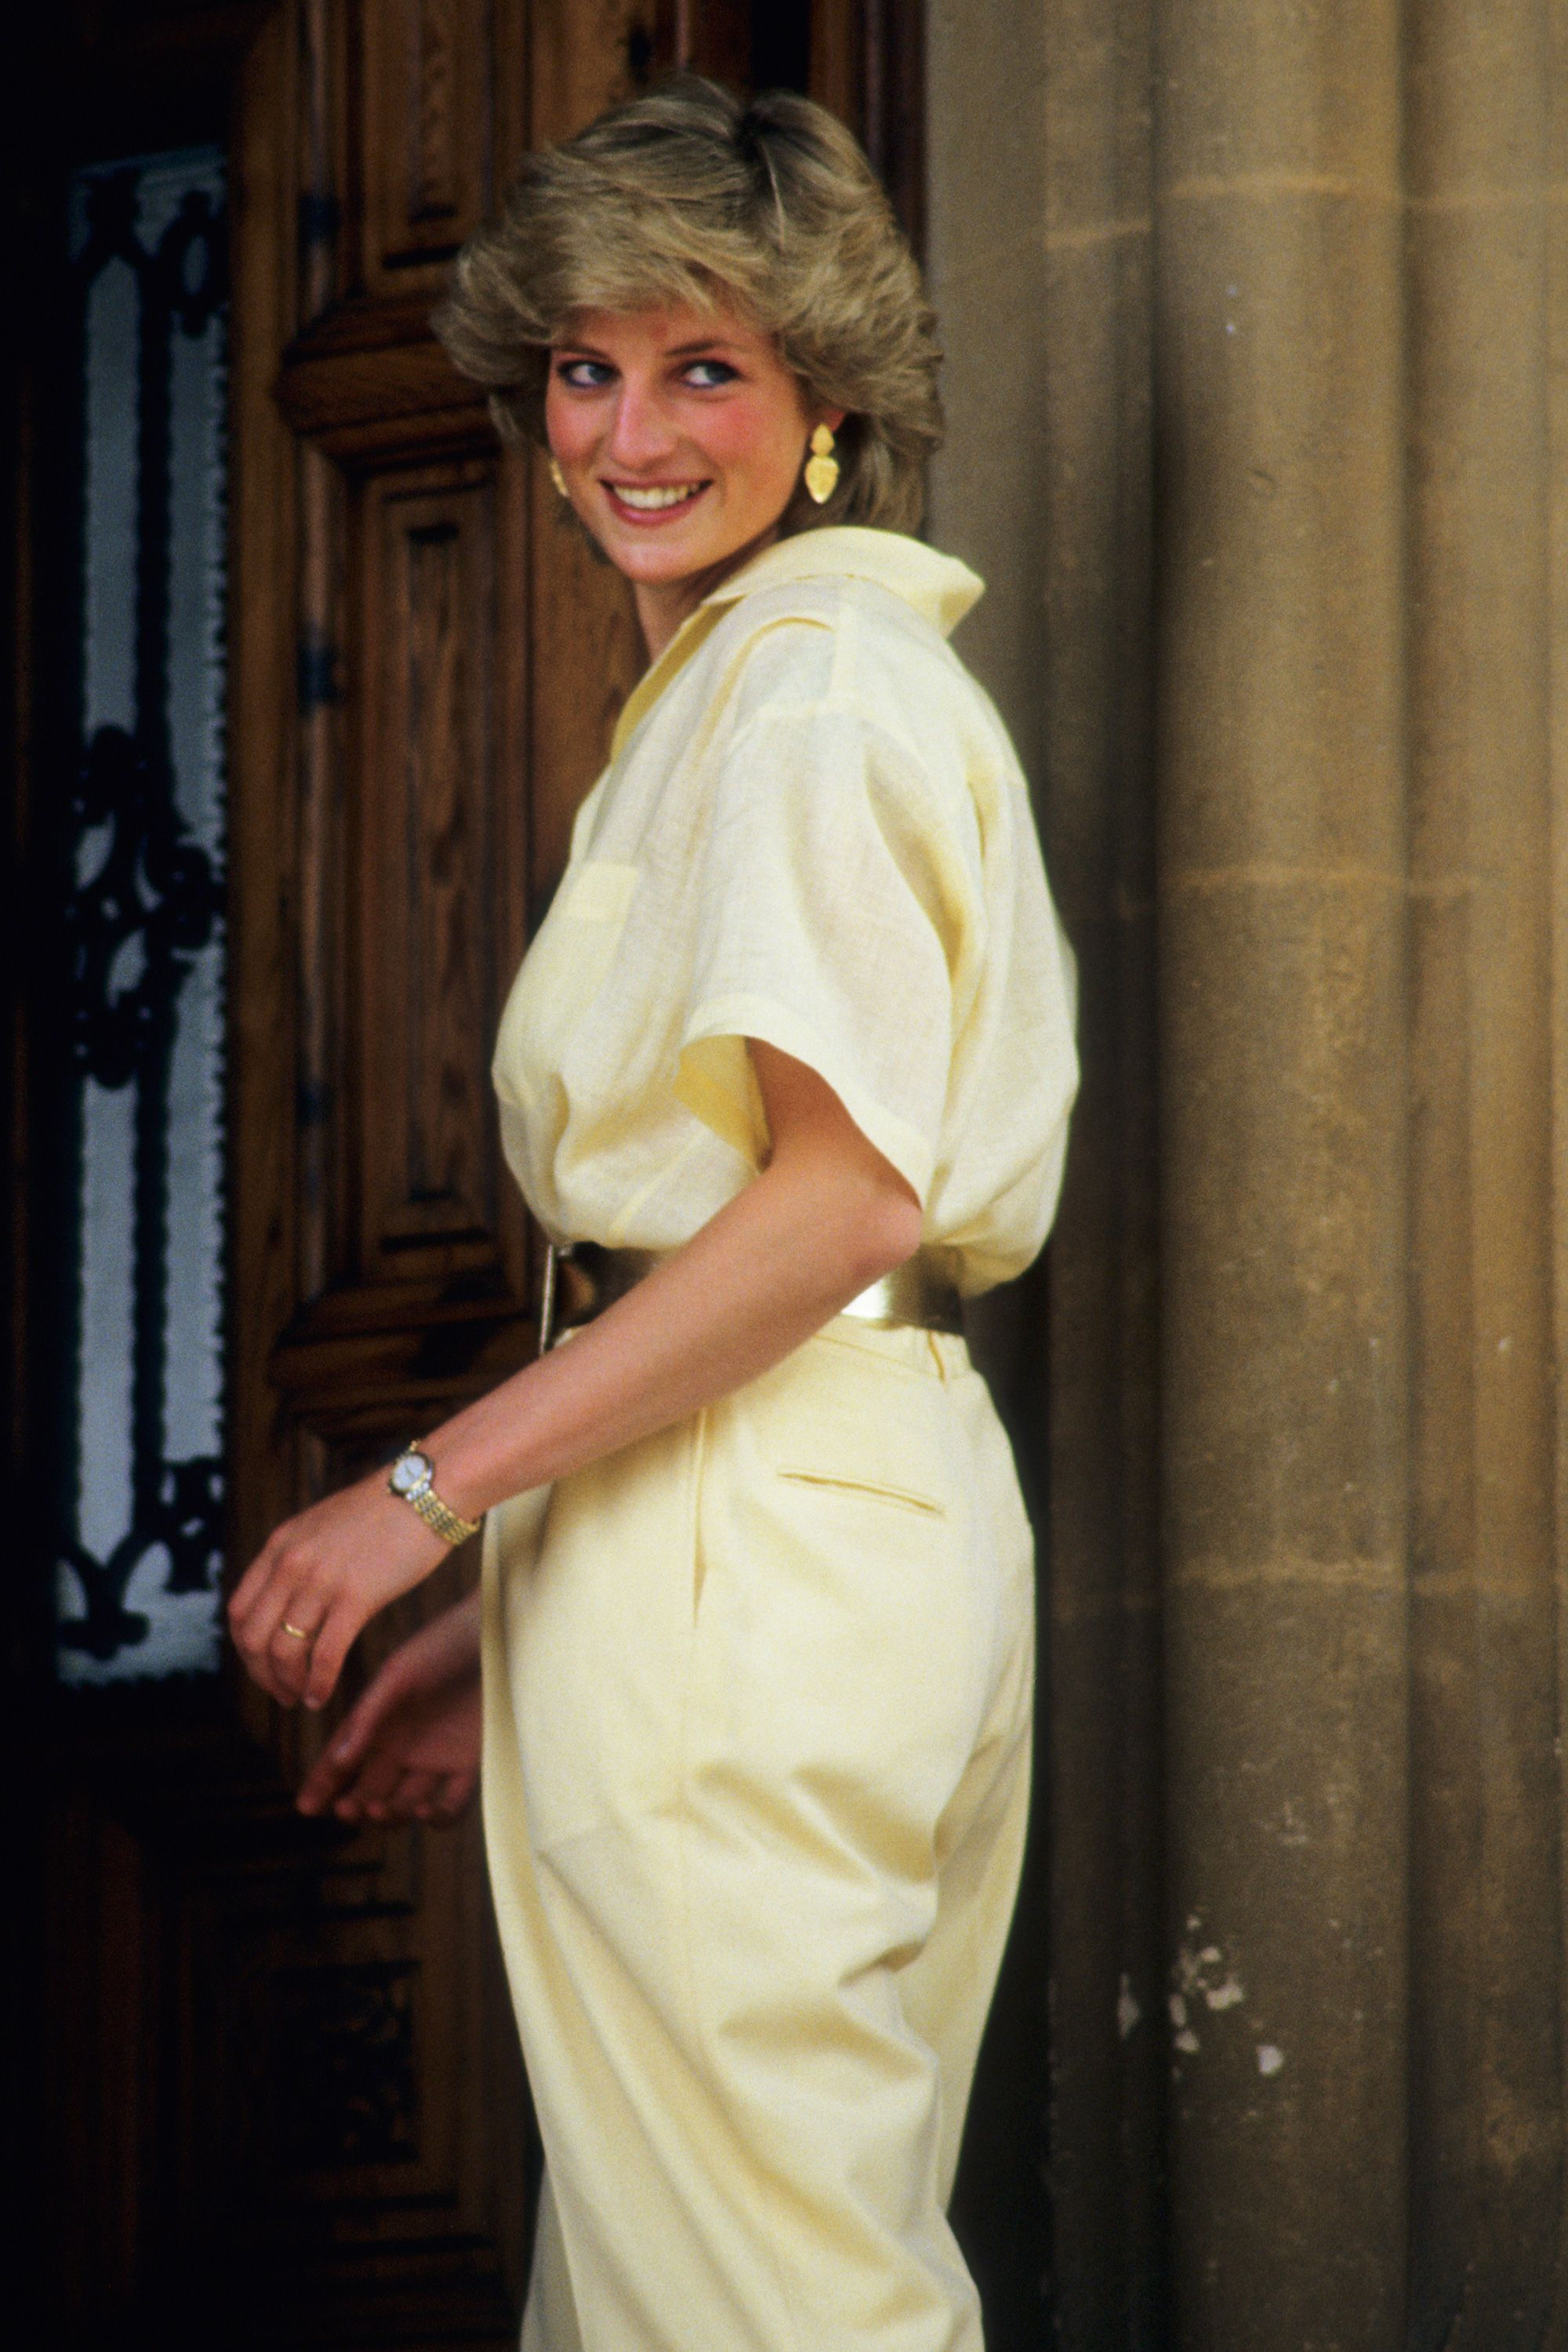 Princess Diana Fashion Exhibition Diana My Fashion Story At Kensington Palace